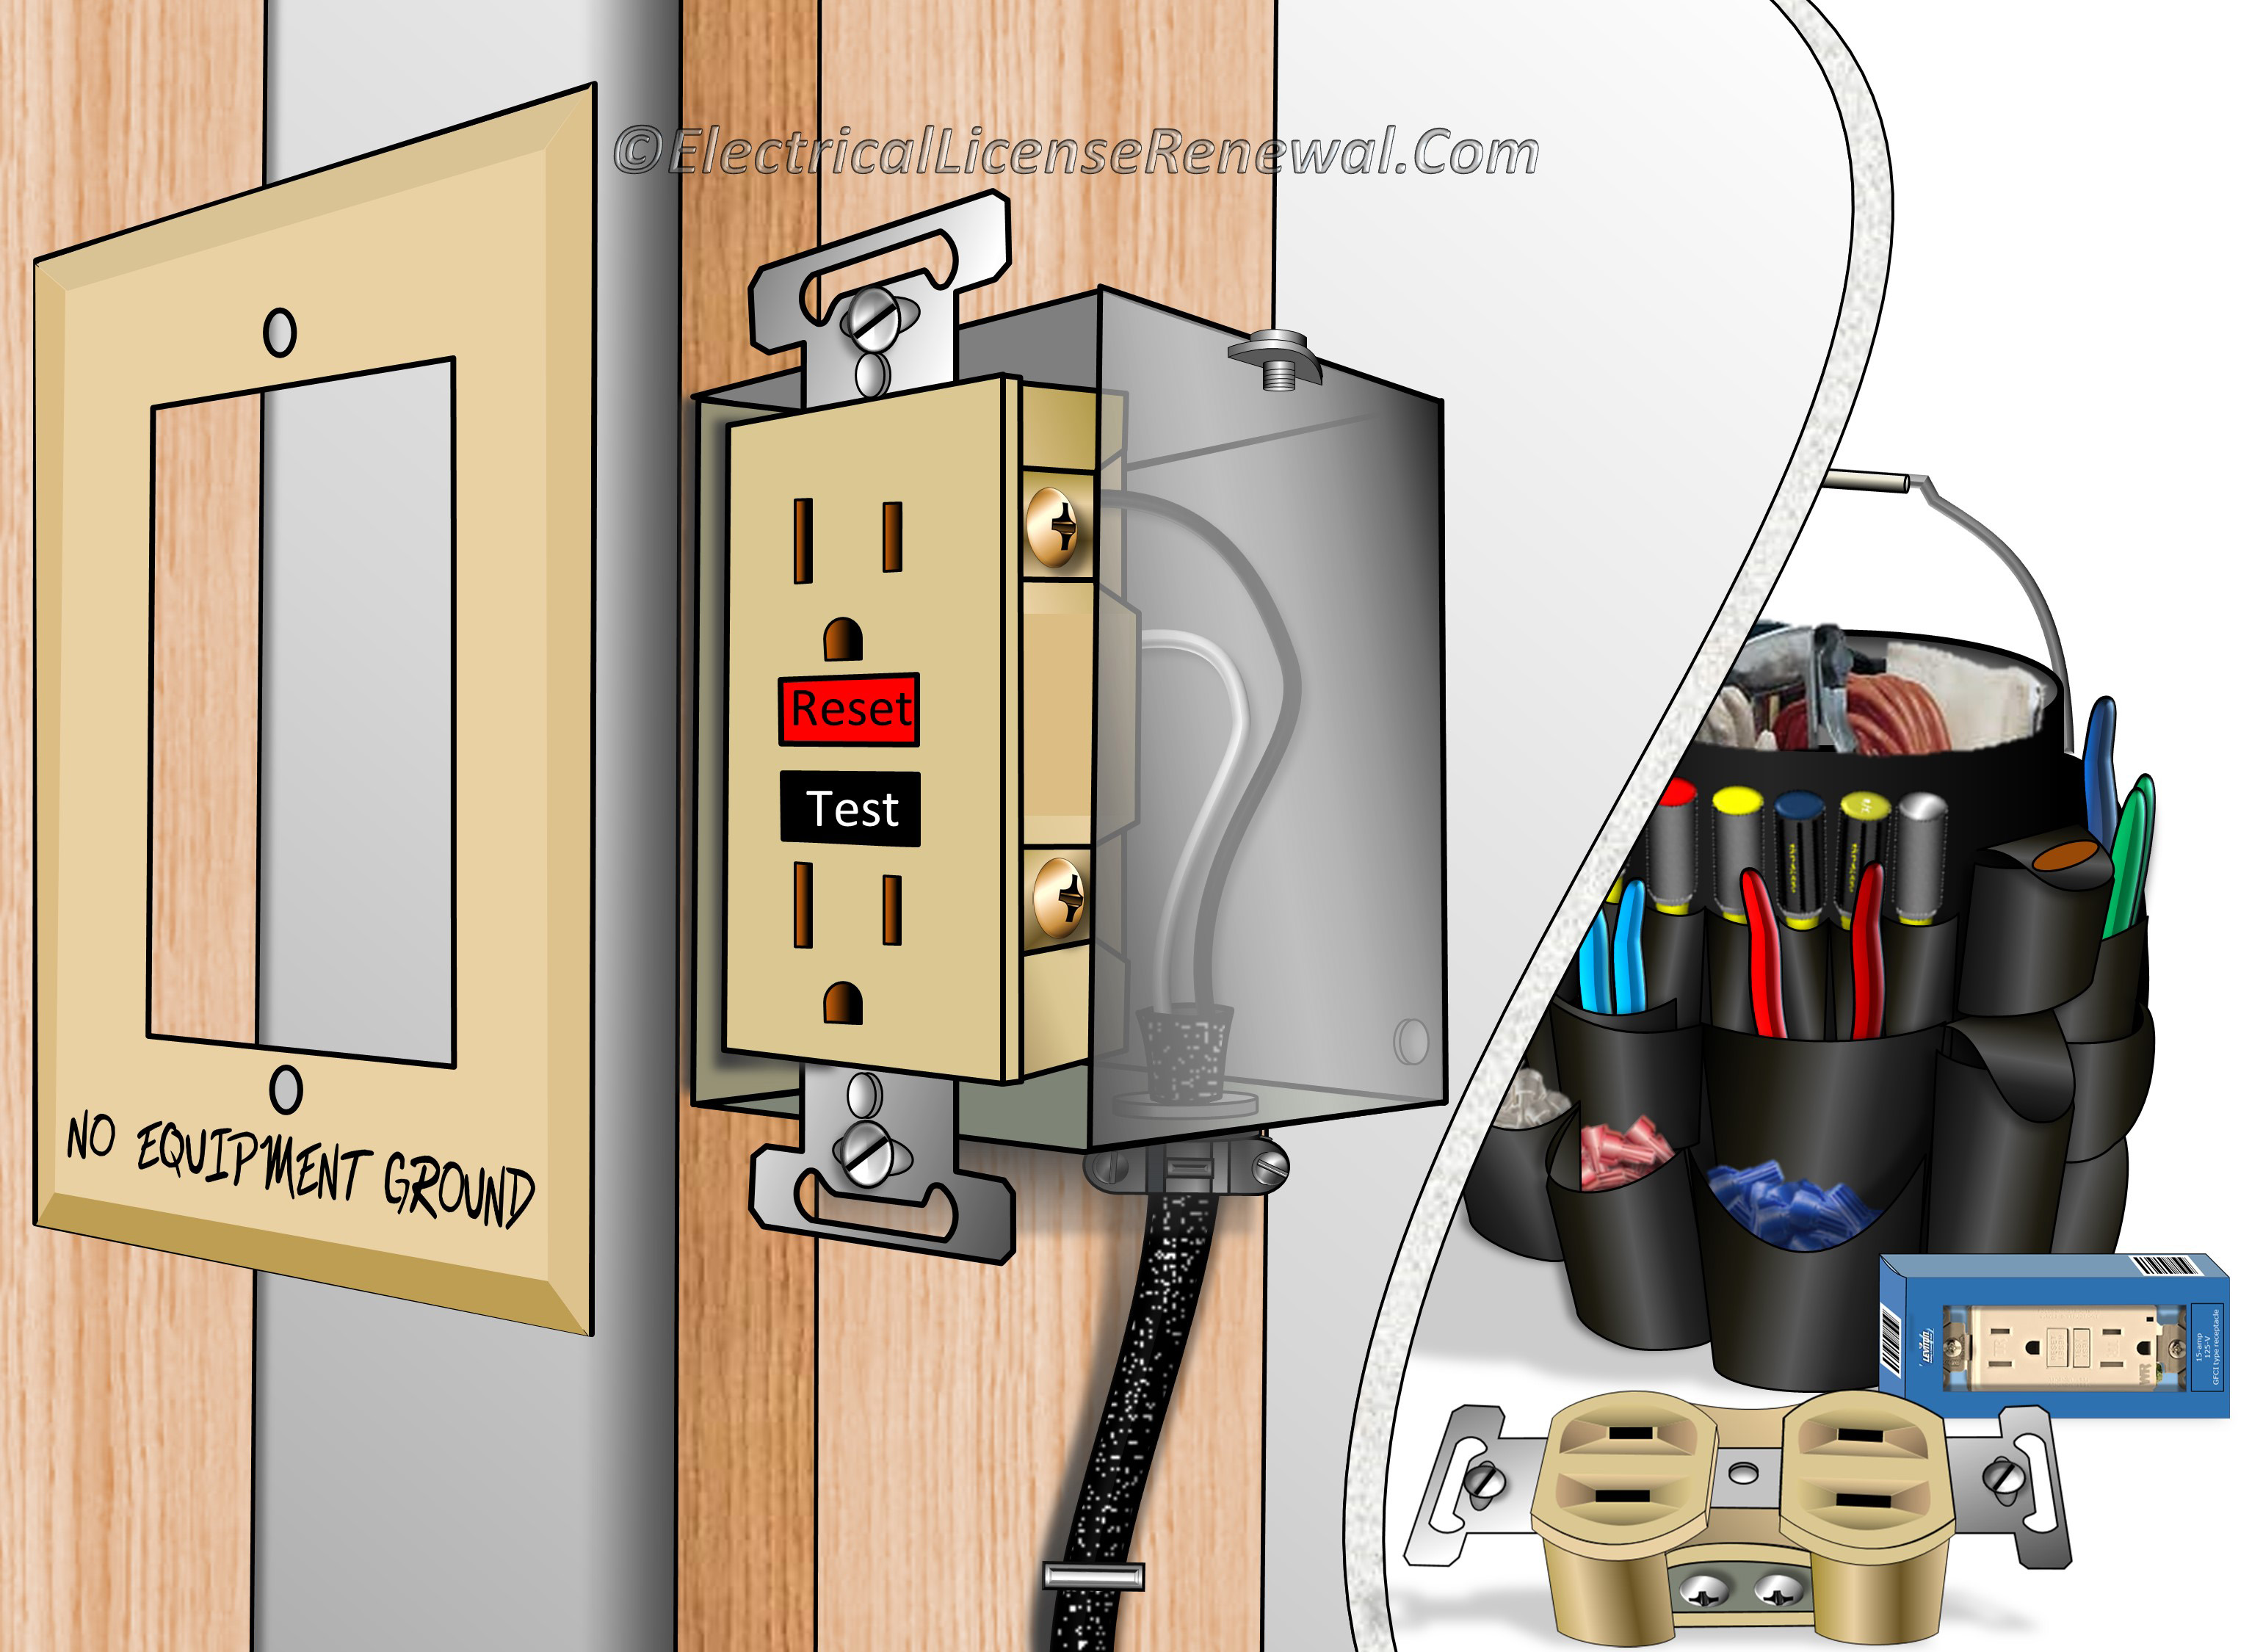 406.4(D)(2) Non-Grounding-Type Receptacles.